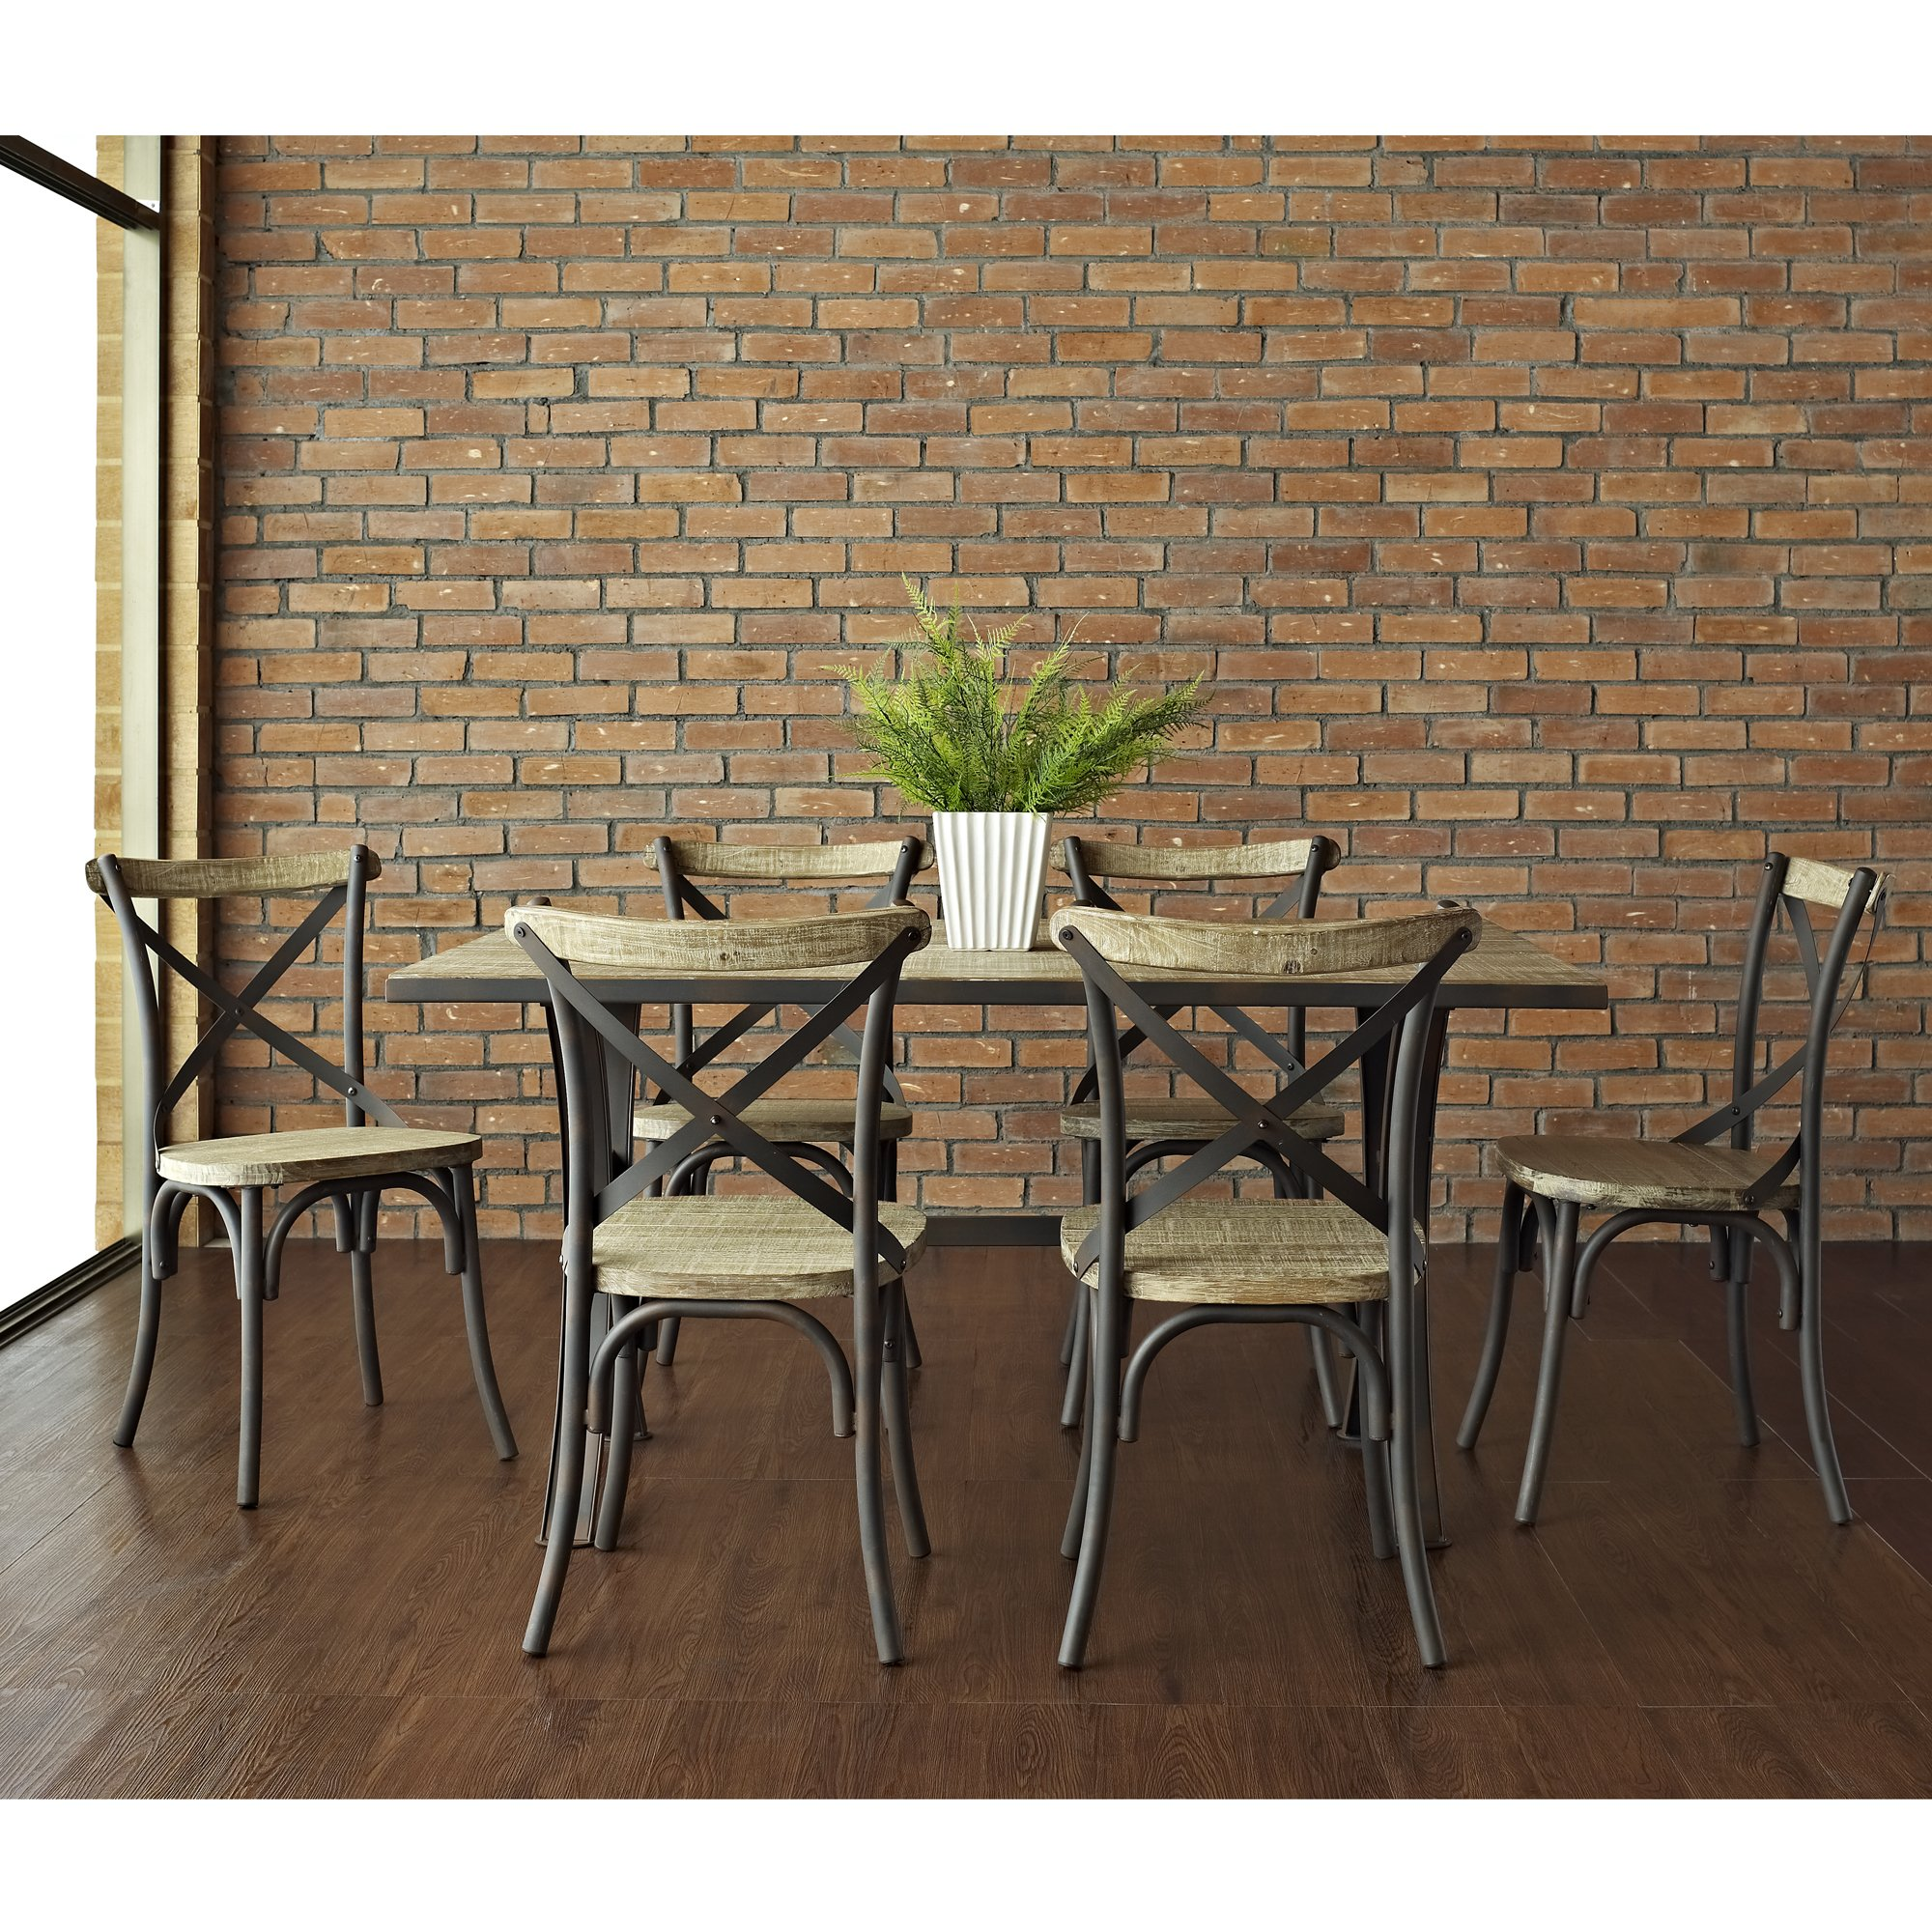 Industrial reclaimed solid wood dining chairs set of